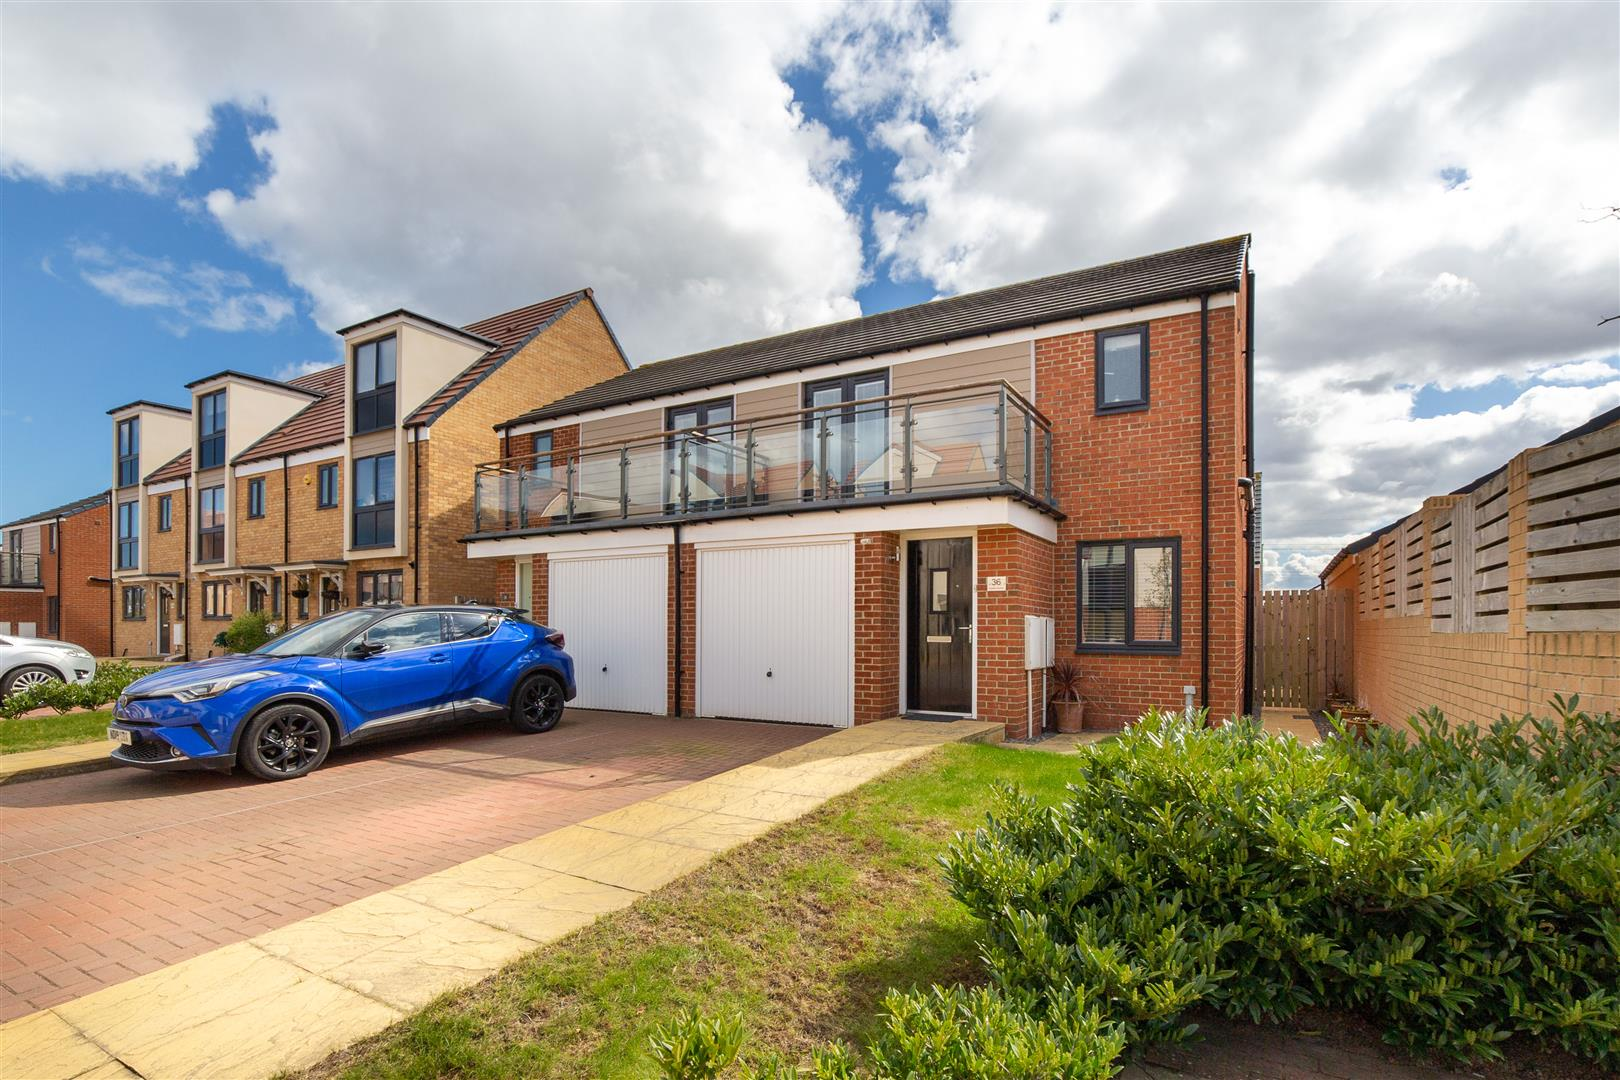 3 bed semi-detached house for sale in Newcastle Upon Tyne, NE13 9DN, NE13